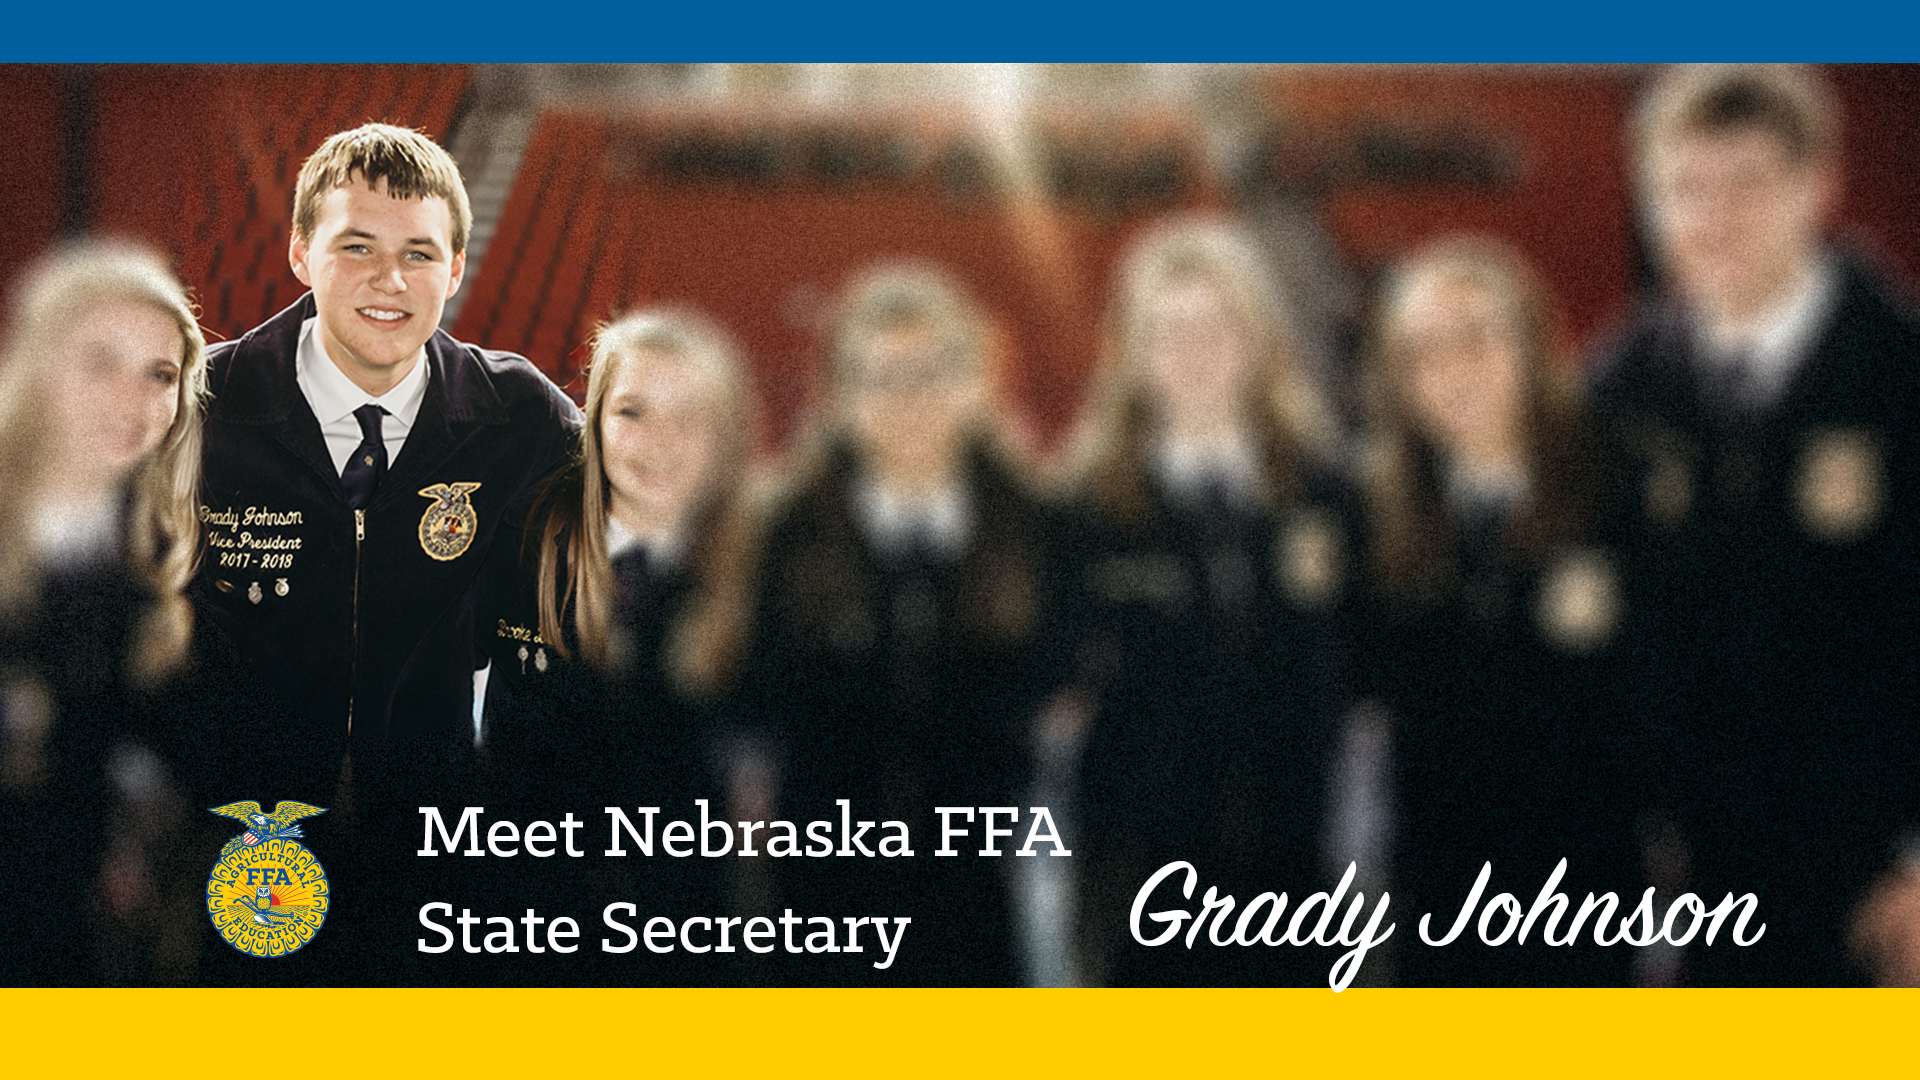 Meet Your 2018-19 Nebraska FFA State Secretary: Grady Johnson